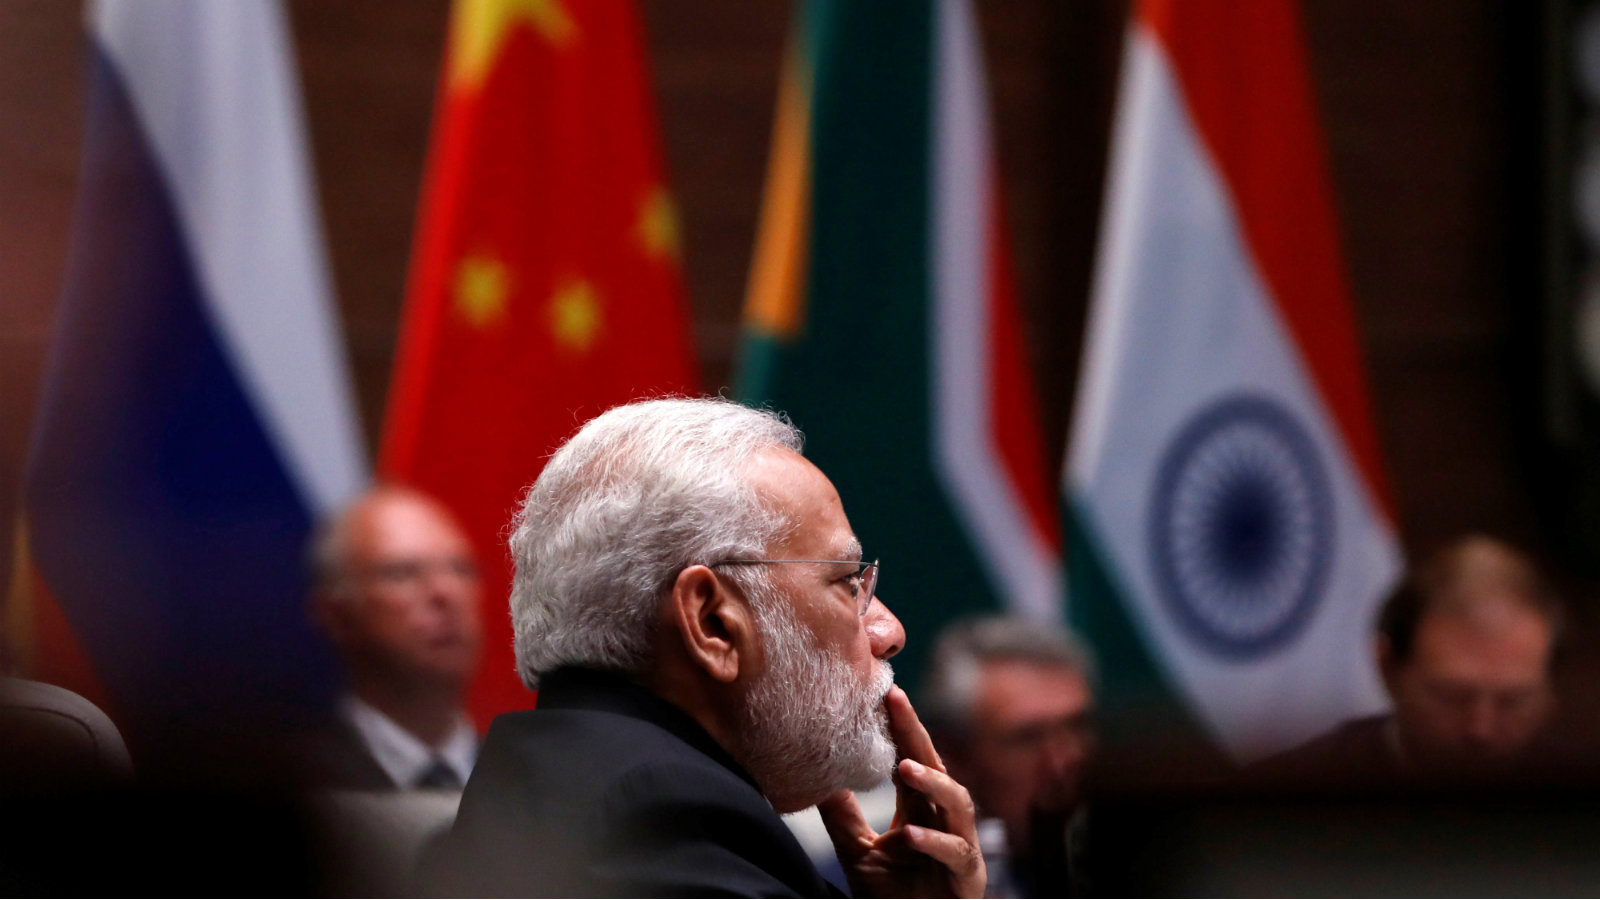 Indian Prime Minister Narendra Modi attends a plenary session of BRICS (Brazil, Russia, India, China and South Africa) Summit, in Xiamen, China September 4, 2017.